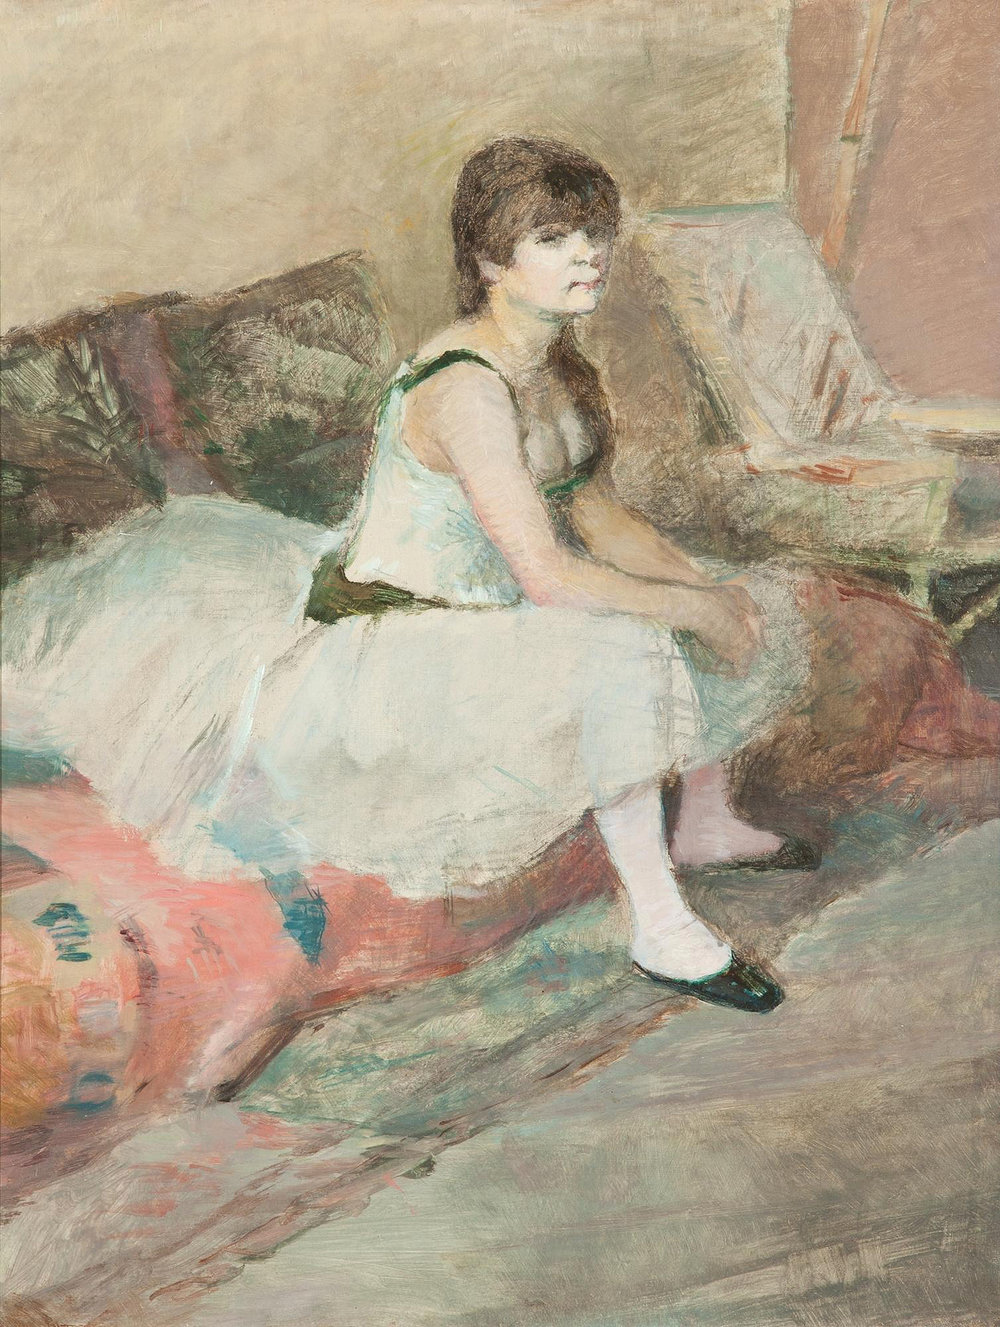 Dancer Seated on a Pink Divan, oil on canvas, 1884, Henri Toulouse-Lautrec (Image courtesy of The Dixon Gallery and Gardens)